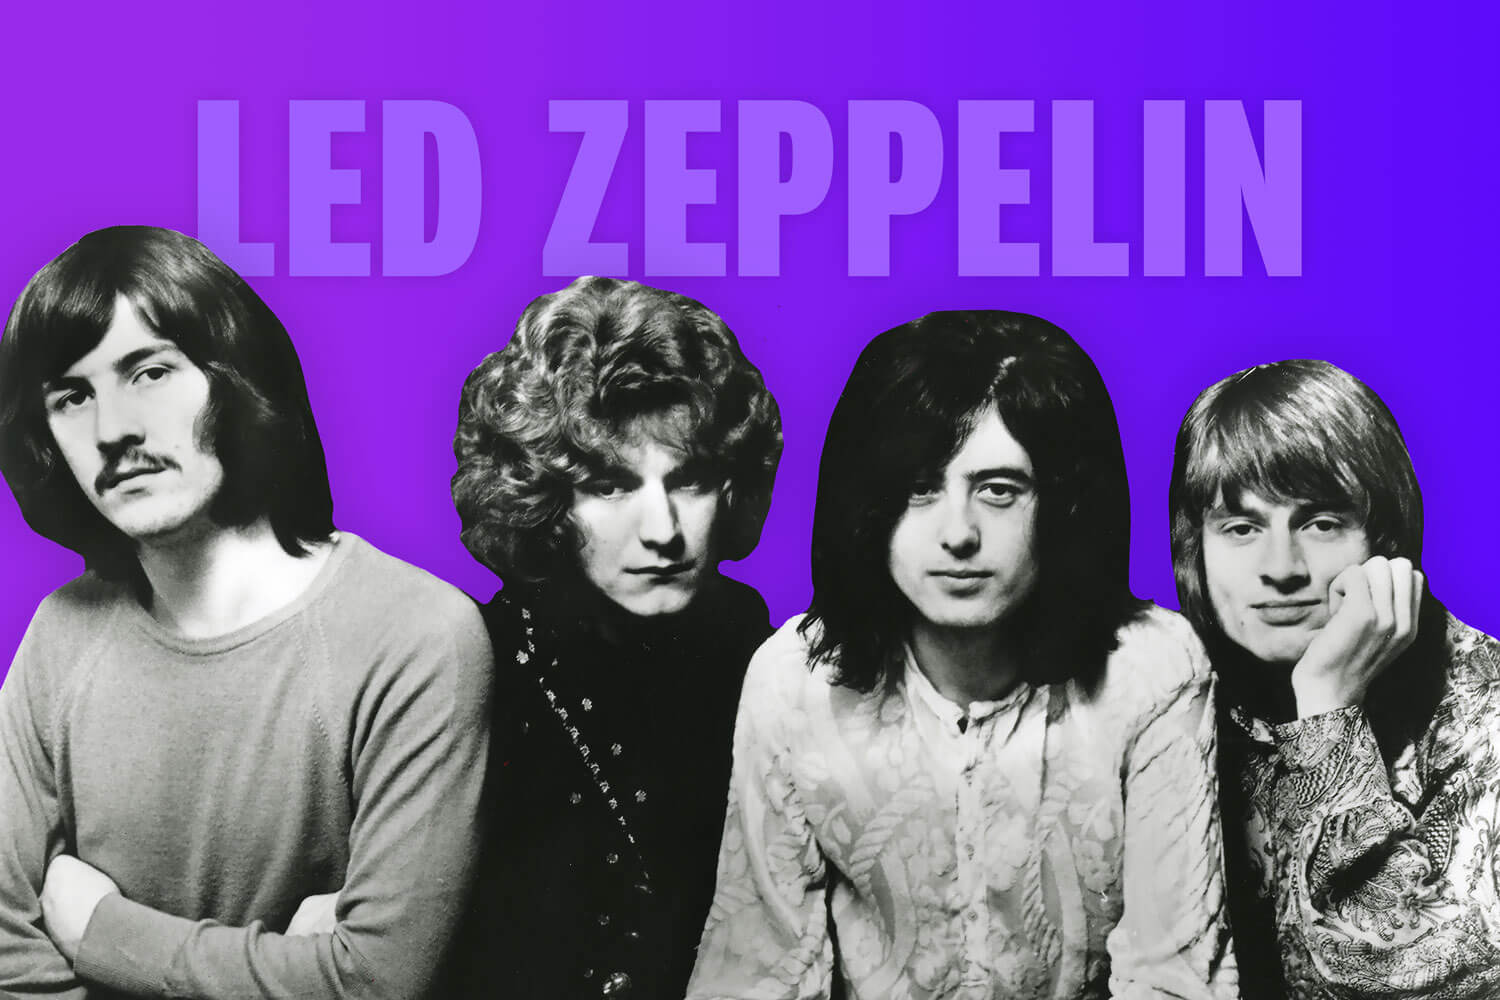 Shop Led Zeppelin products